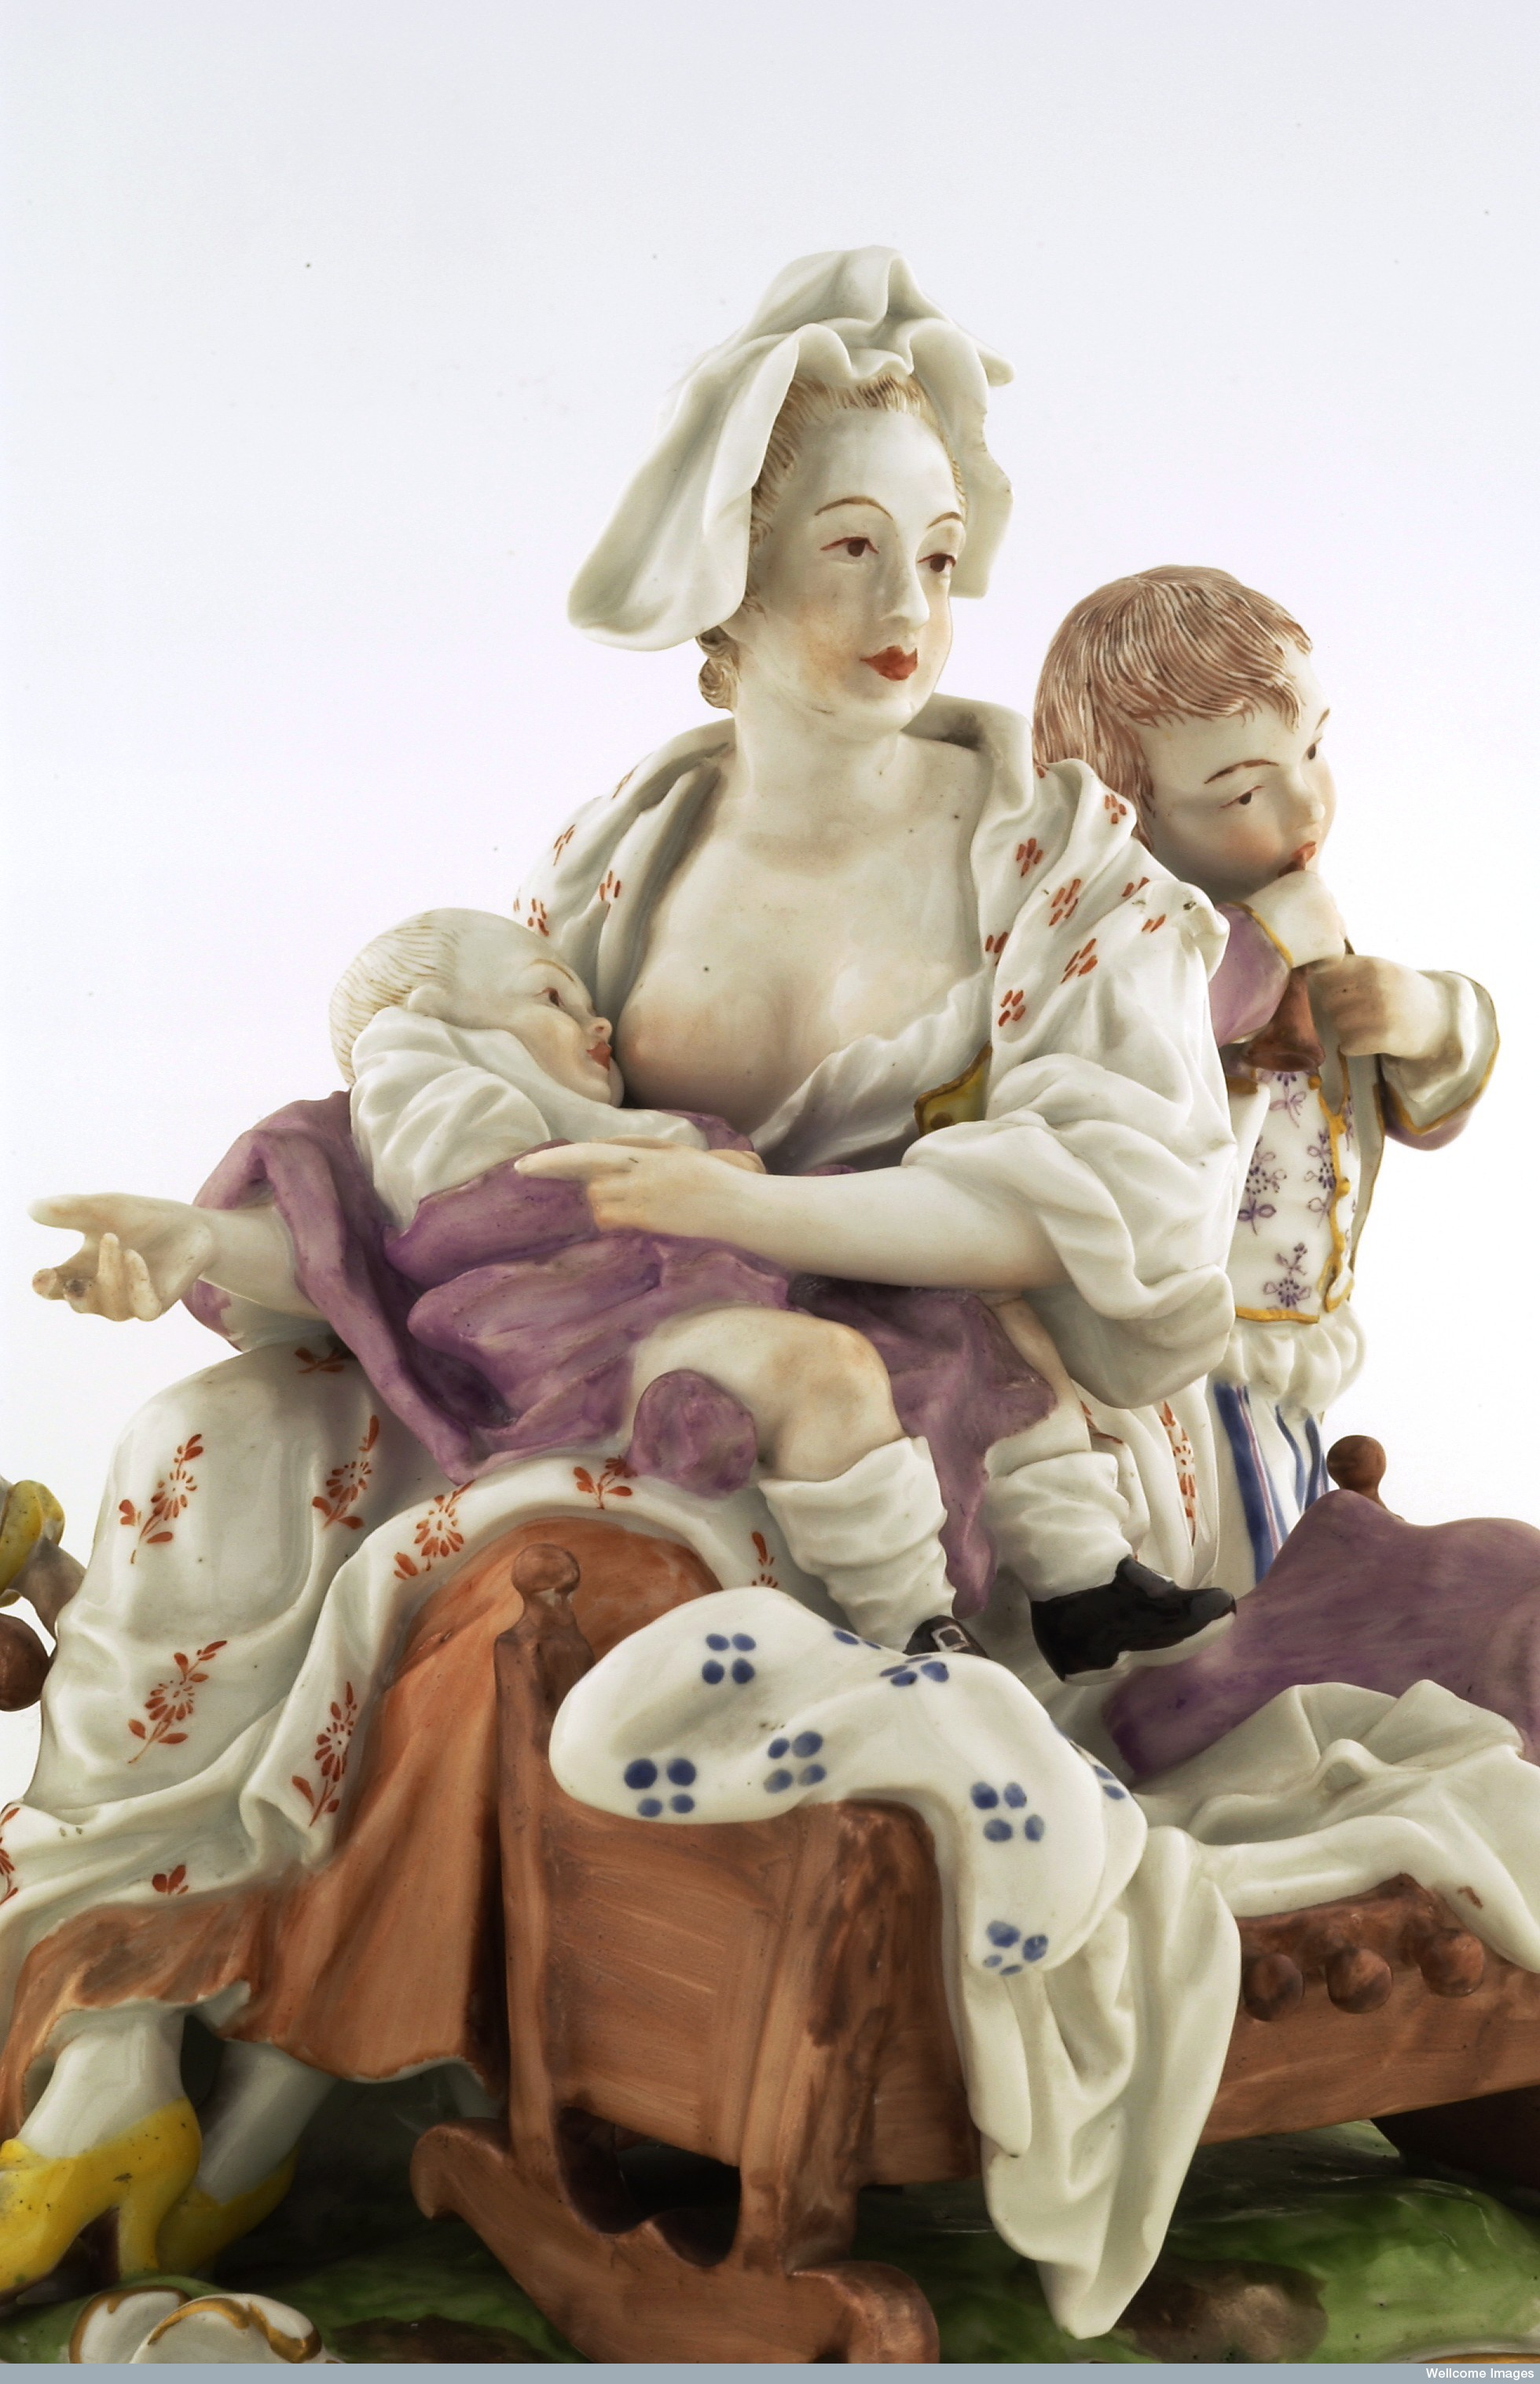 look d like milk breastmilk substitutes in new england s porcelain figure of a w breastfeeding 18th century image credit wellcome library